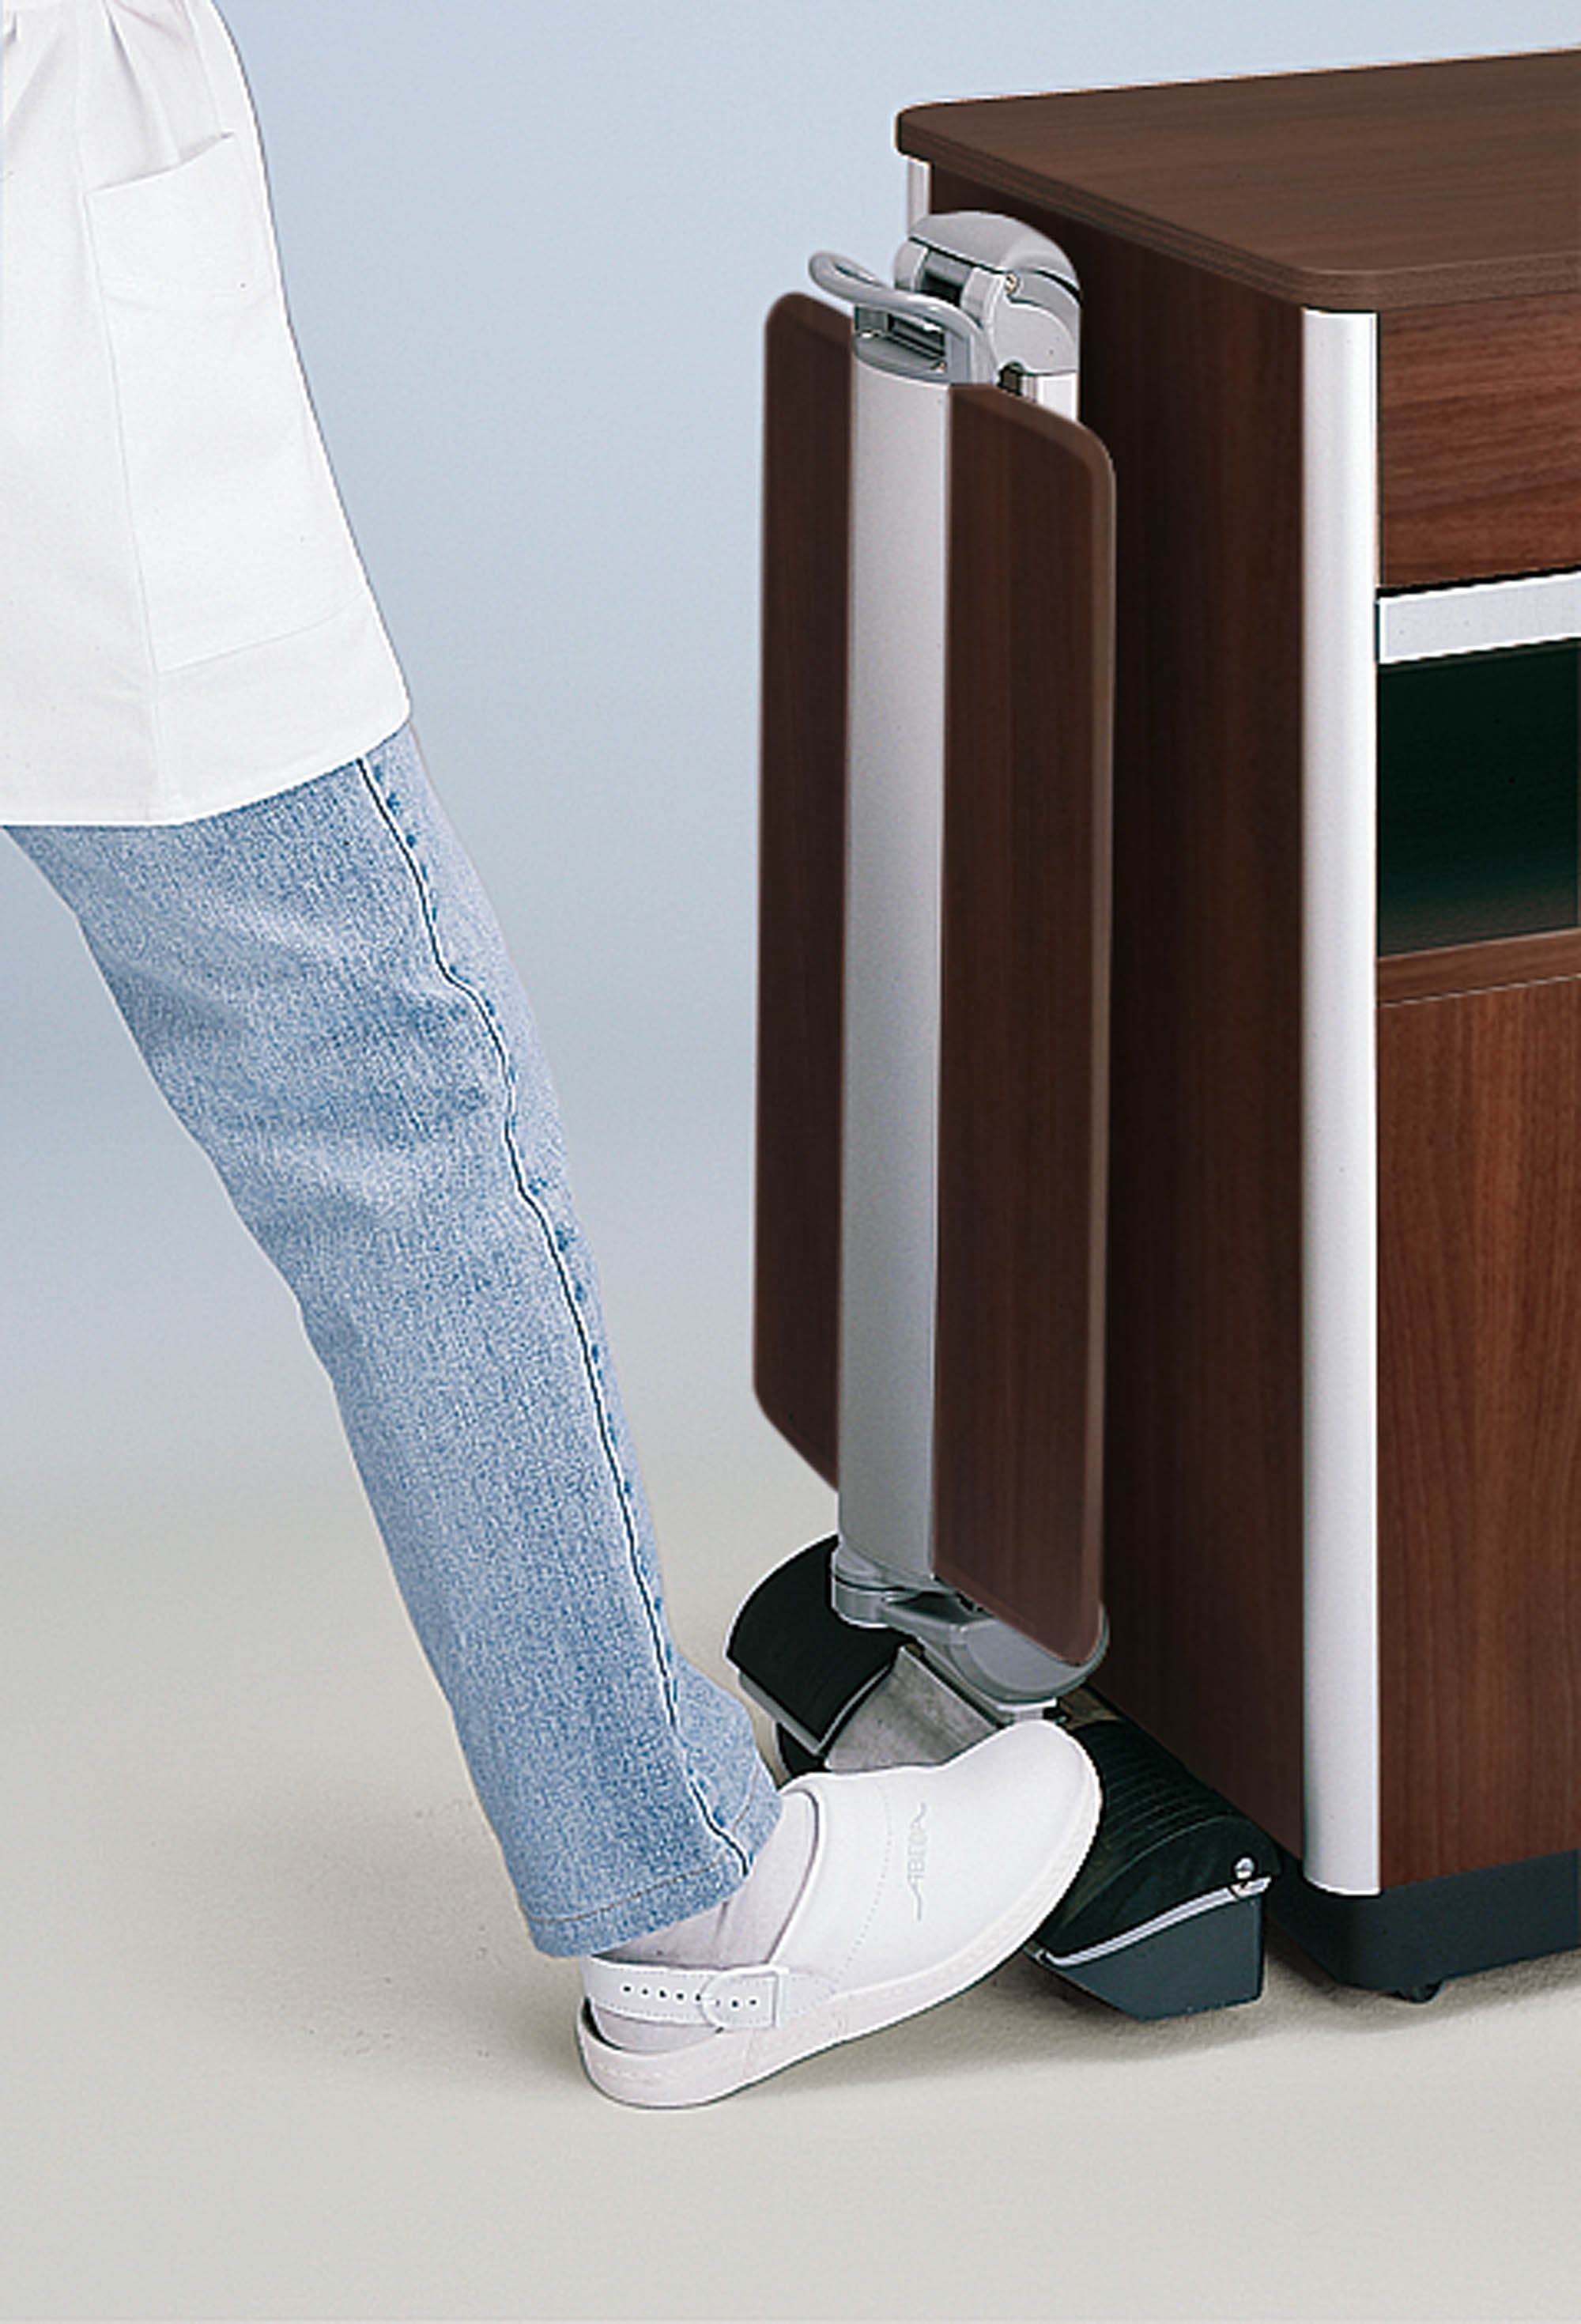 Detaching the overbed table from the Combino bedside cabinet